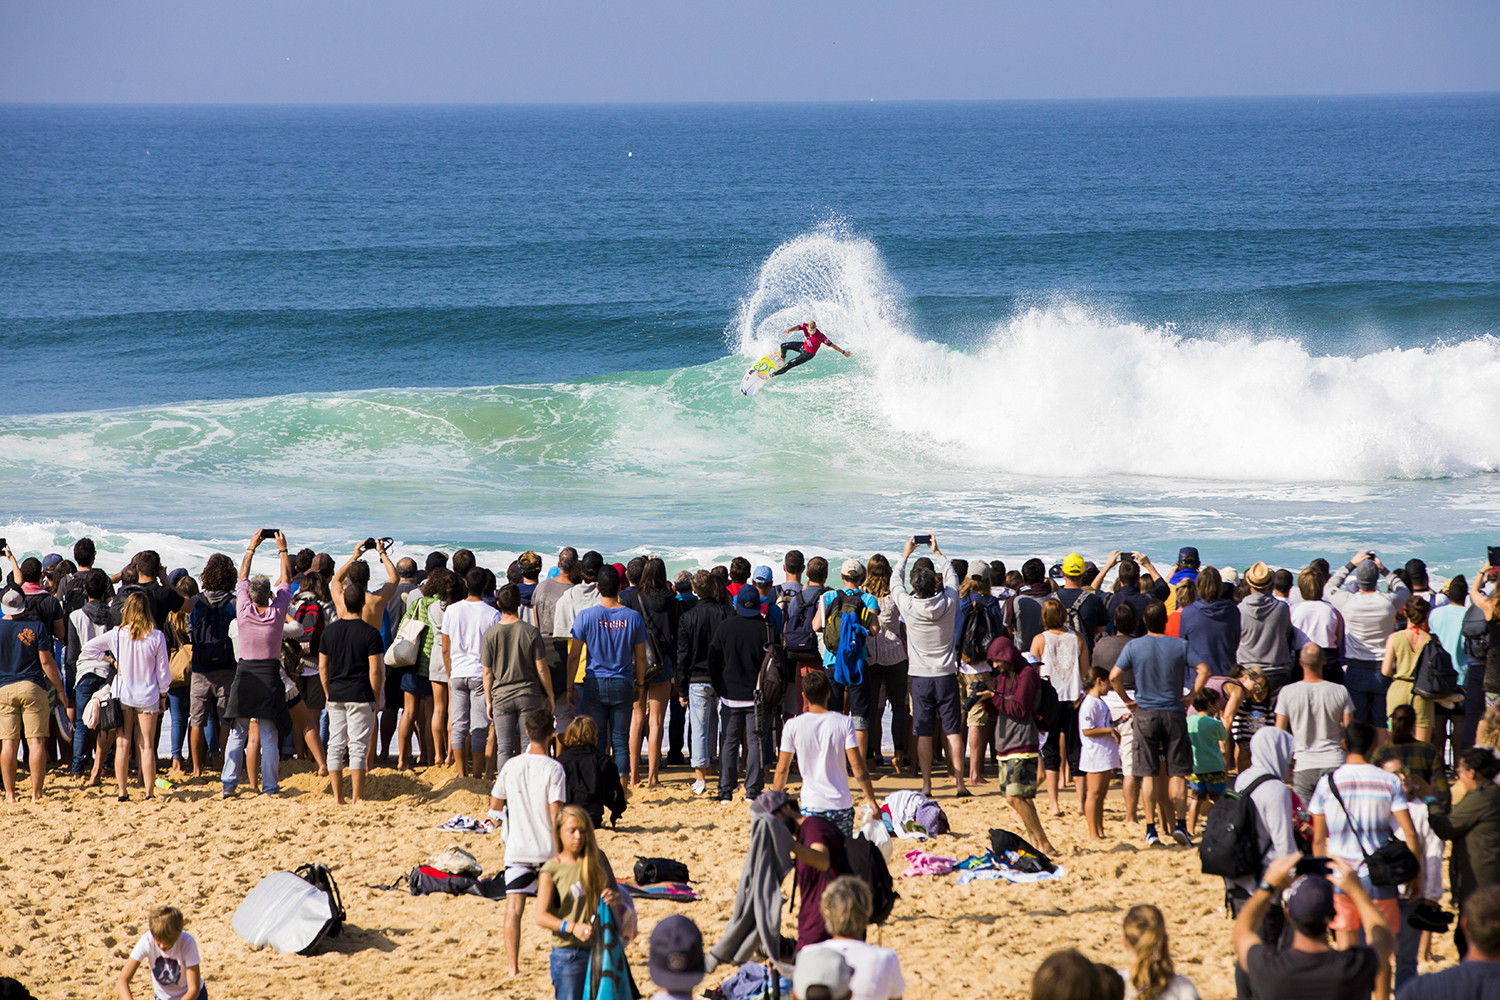 mick-fanning-quiksilver-pro-france-2017-final-hossegor-france-guillaume-arrieta-we-creative